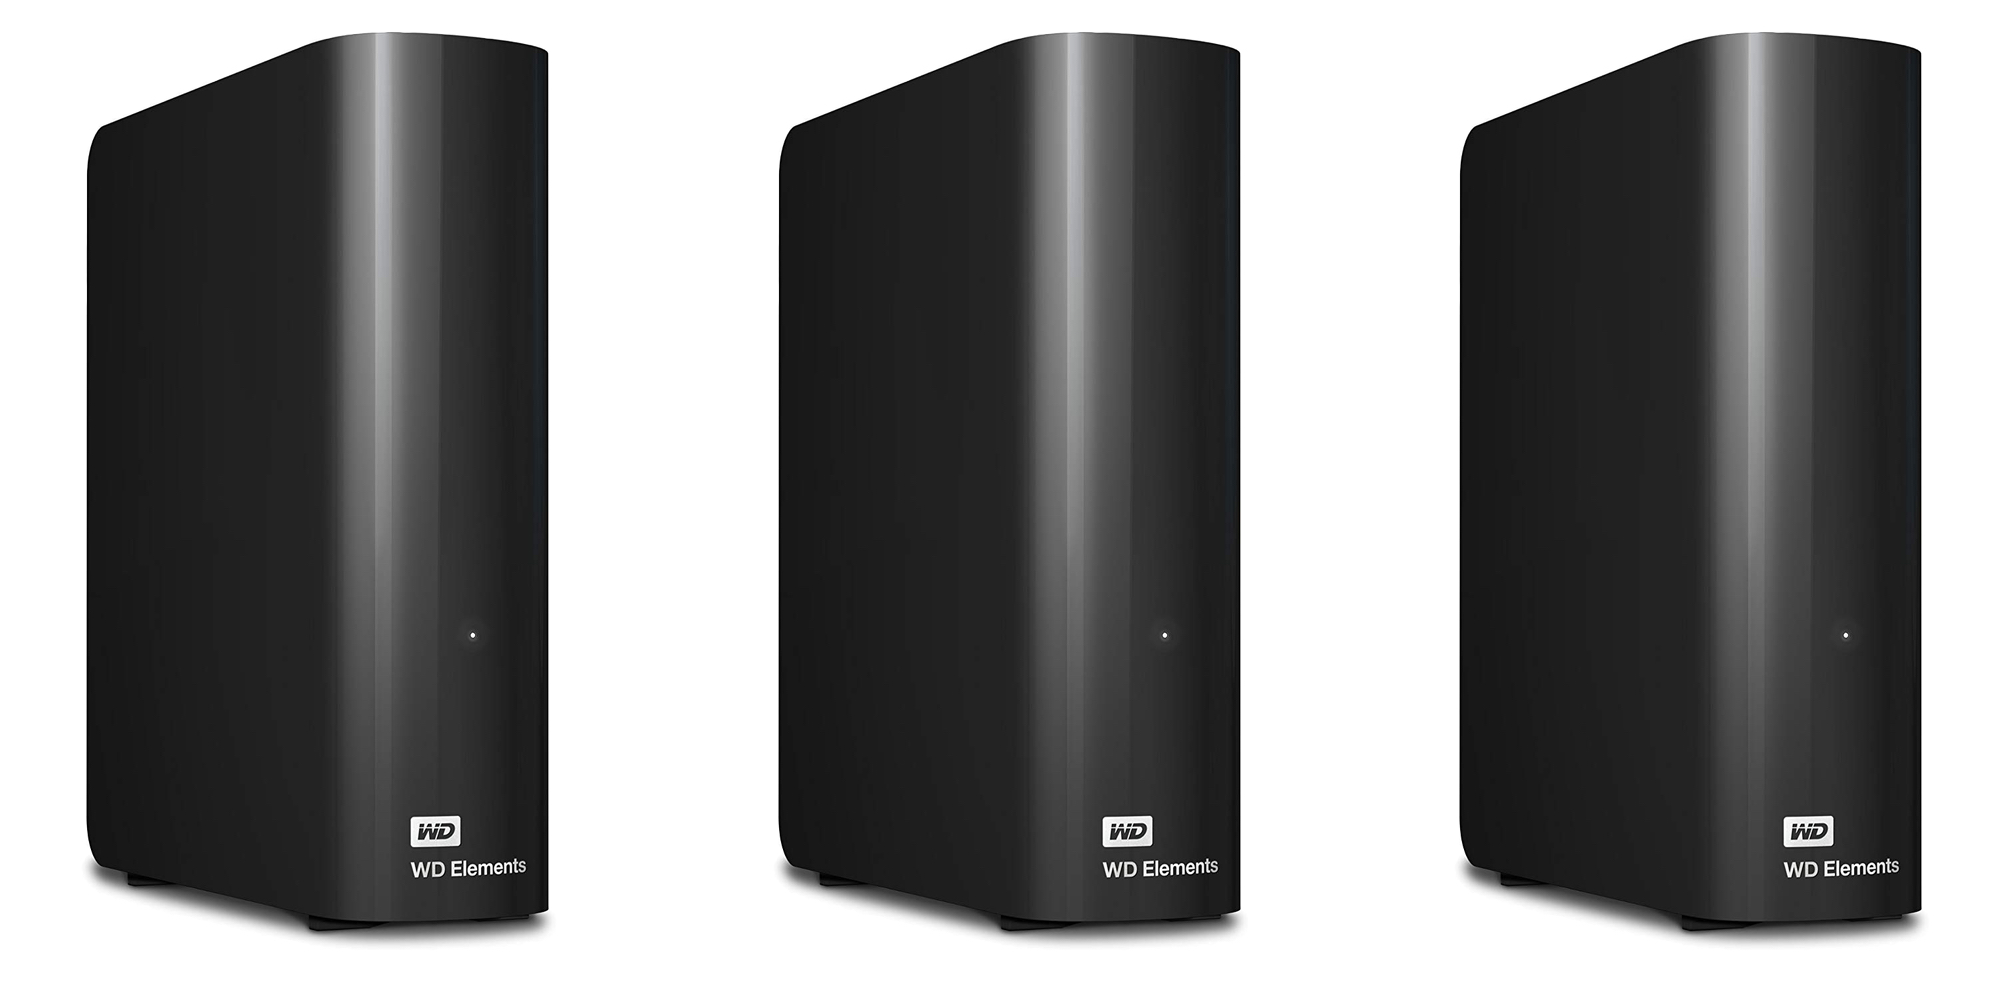 WD's 4TB Desktop USB 3.0 Hard Drive is perfect for Time Machine backups at $80 (Save 20%)